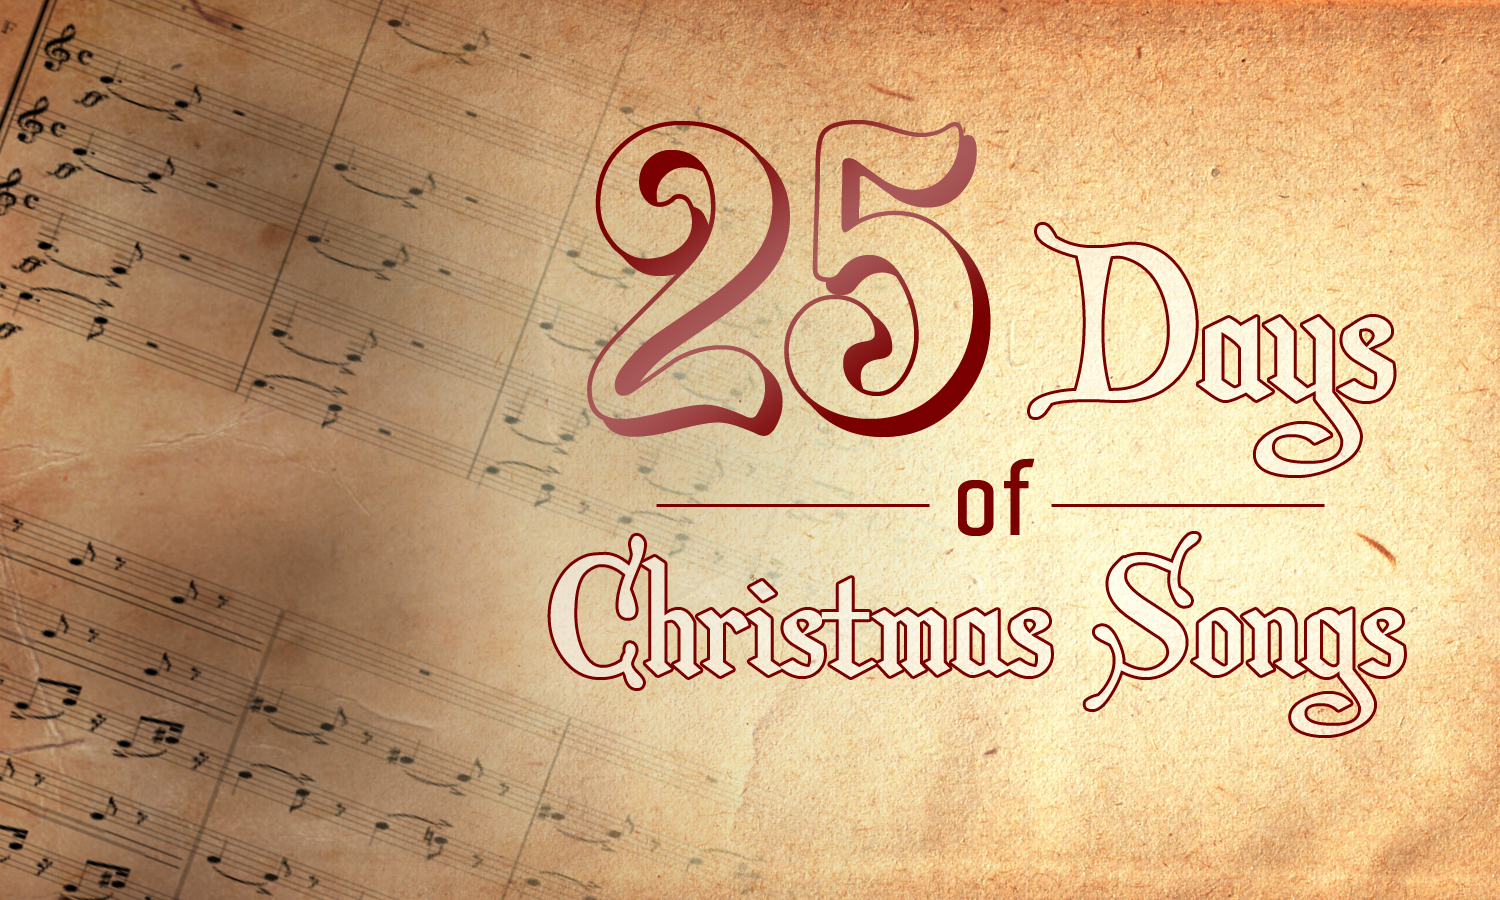 25 Days of Christmas Songs – Day 22